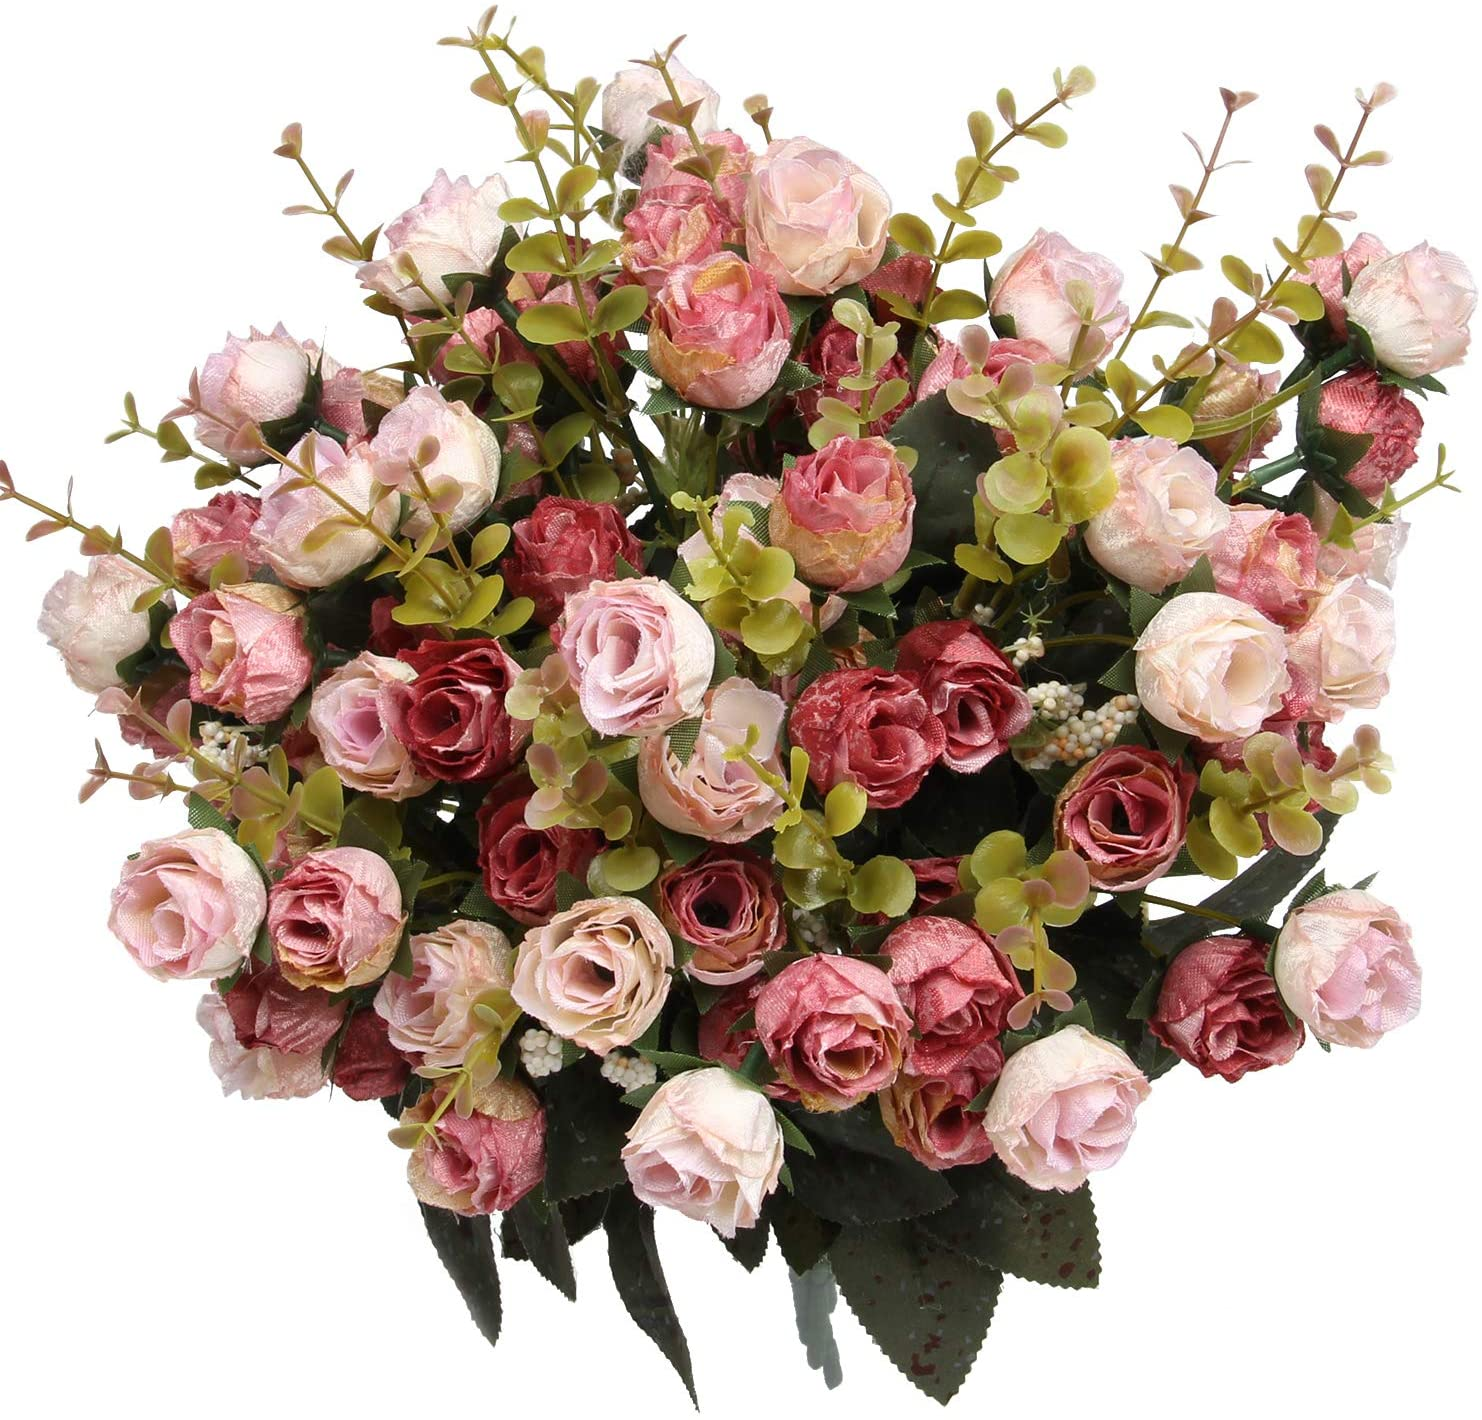 Flojery 21 Heads Silk Rose Bouquet Artificial Flowers Mini Rose for DIY Wedding Bouquets Centerpieces Bridal Shower Party Home Decorations,Pack of 4 (Pink)